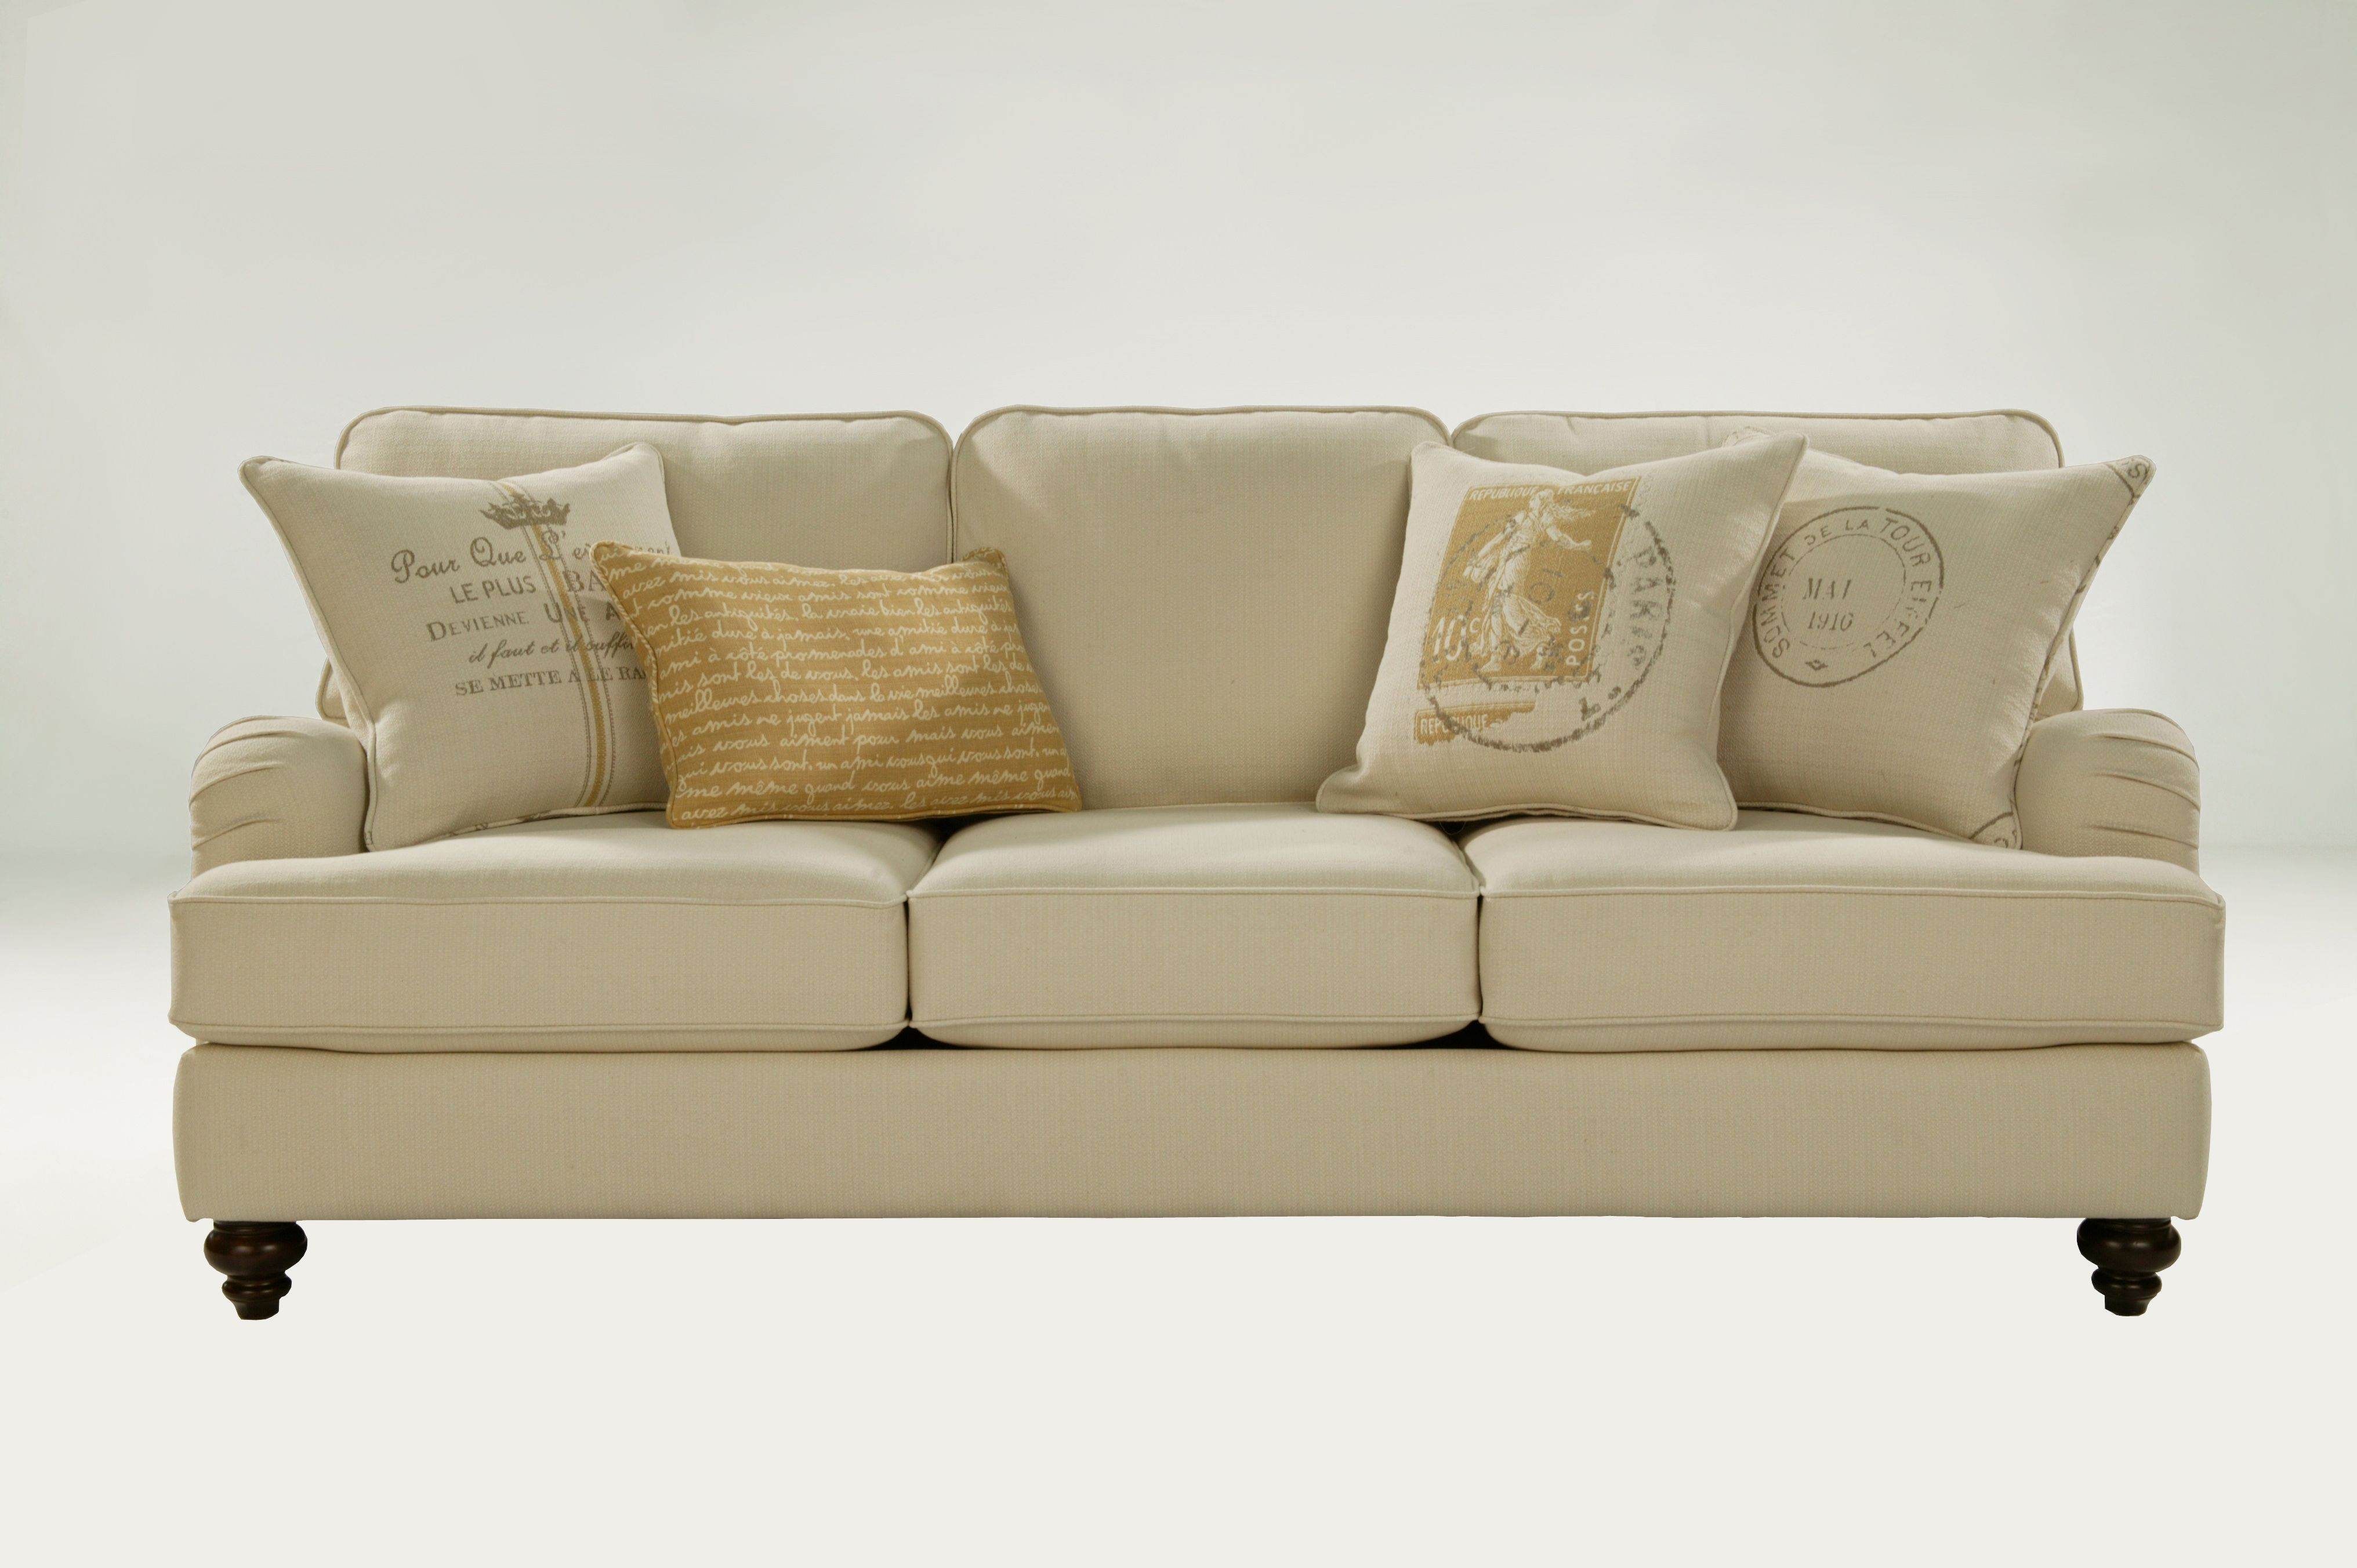 robert michael chateau sofa for the home pinterest